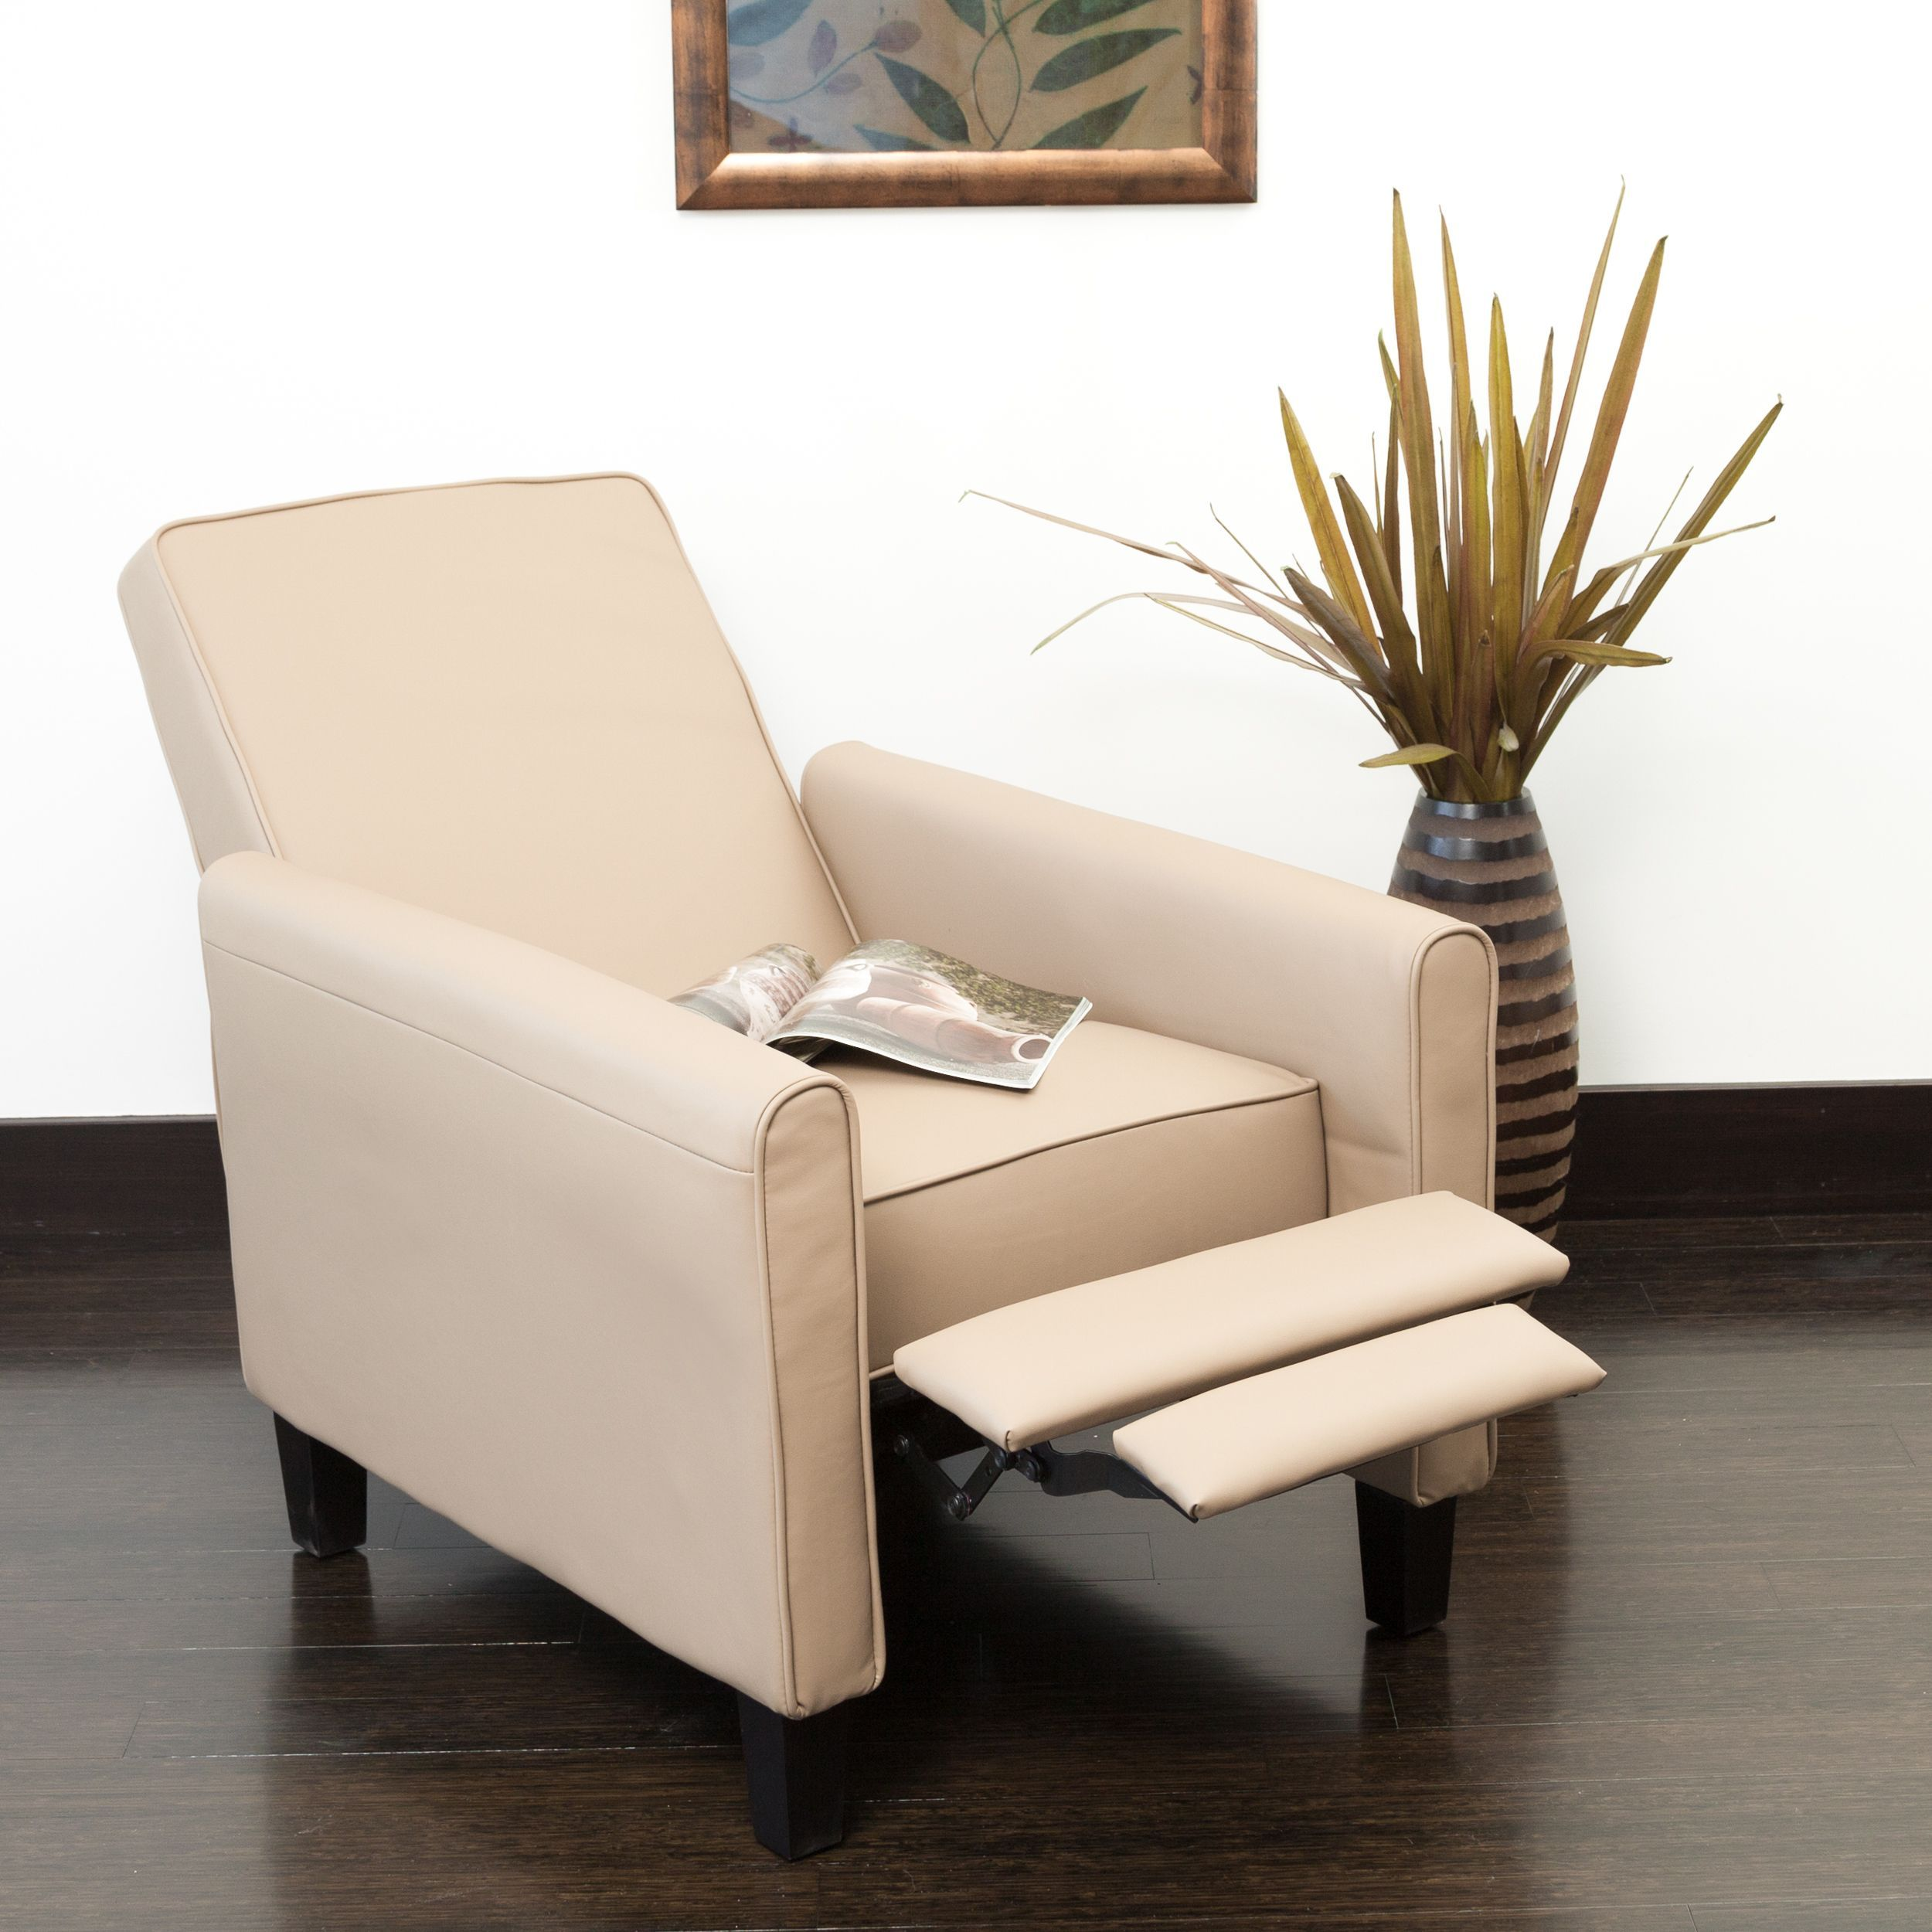 Darvis Camel PU Leather Recliner Club Chair By Christopher Knight Home By Christopher  Knight Home